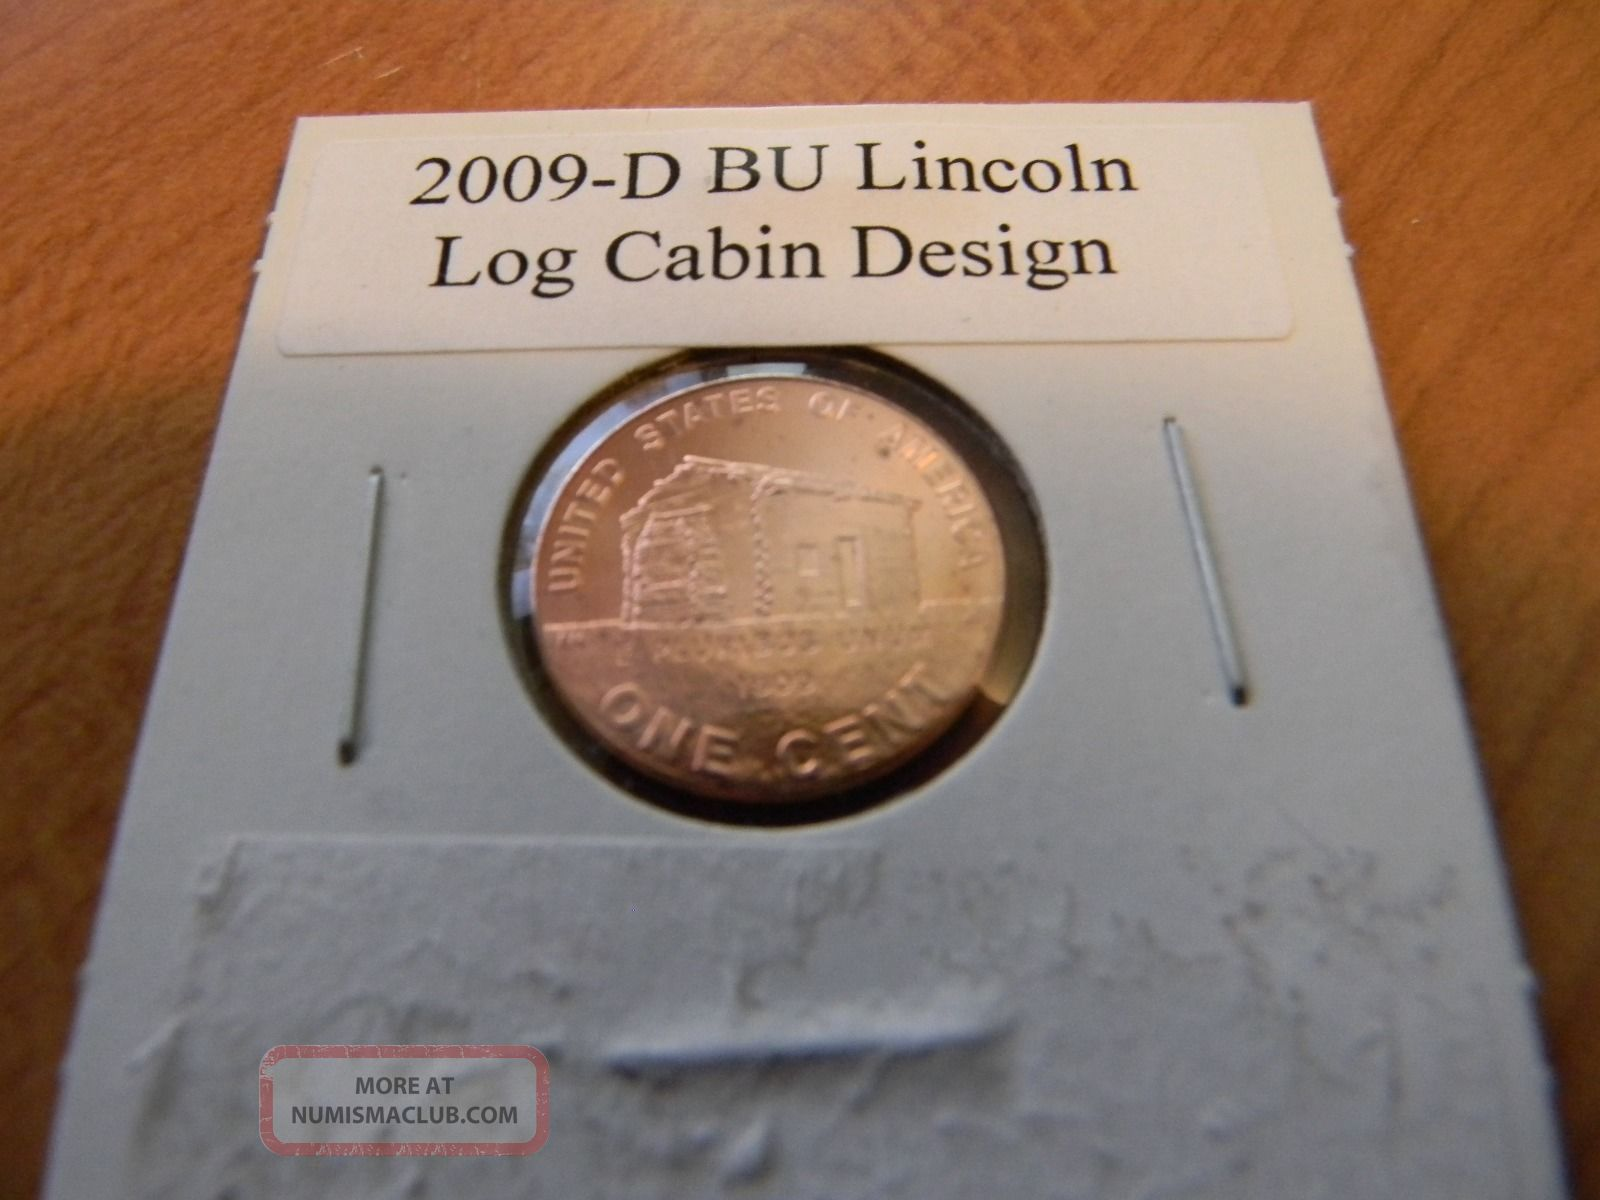 Amazing photo of 2009 d bu lincoln log cabin penny red cent design u   s   coin 1 lgw  with #7F4820 color and 1600x1200 pixels